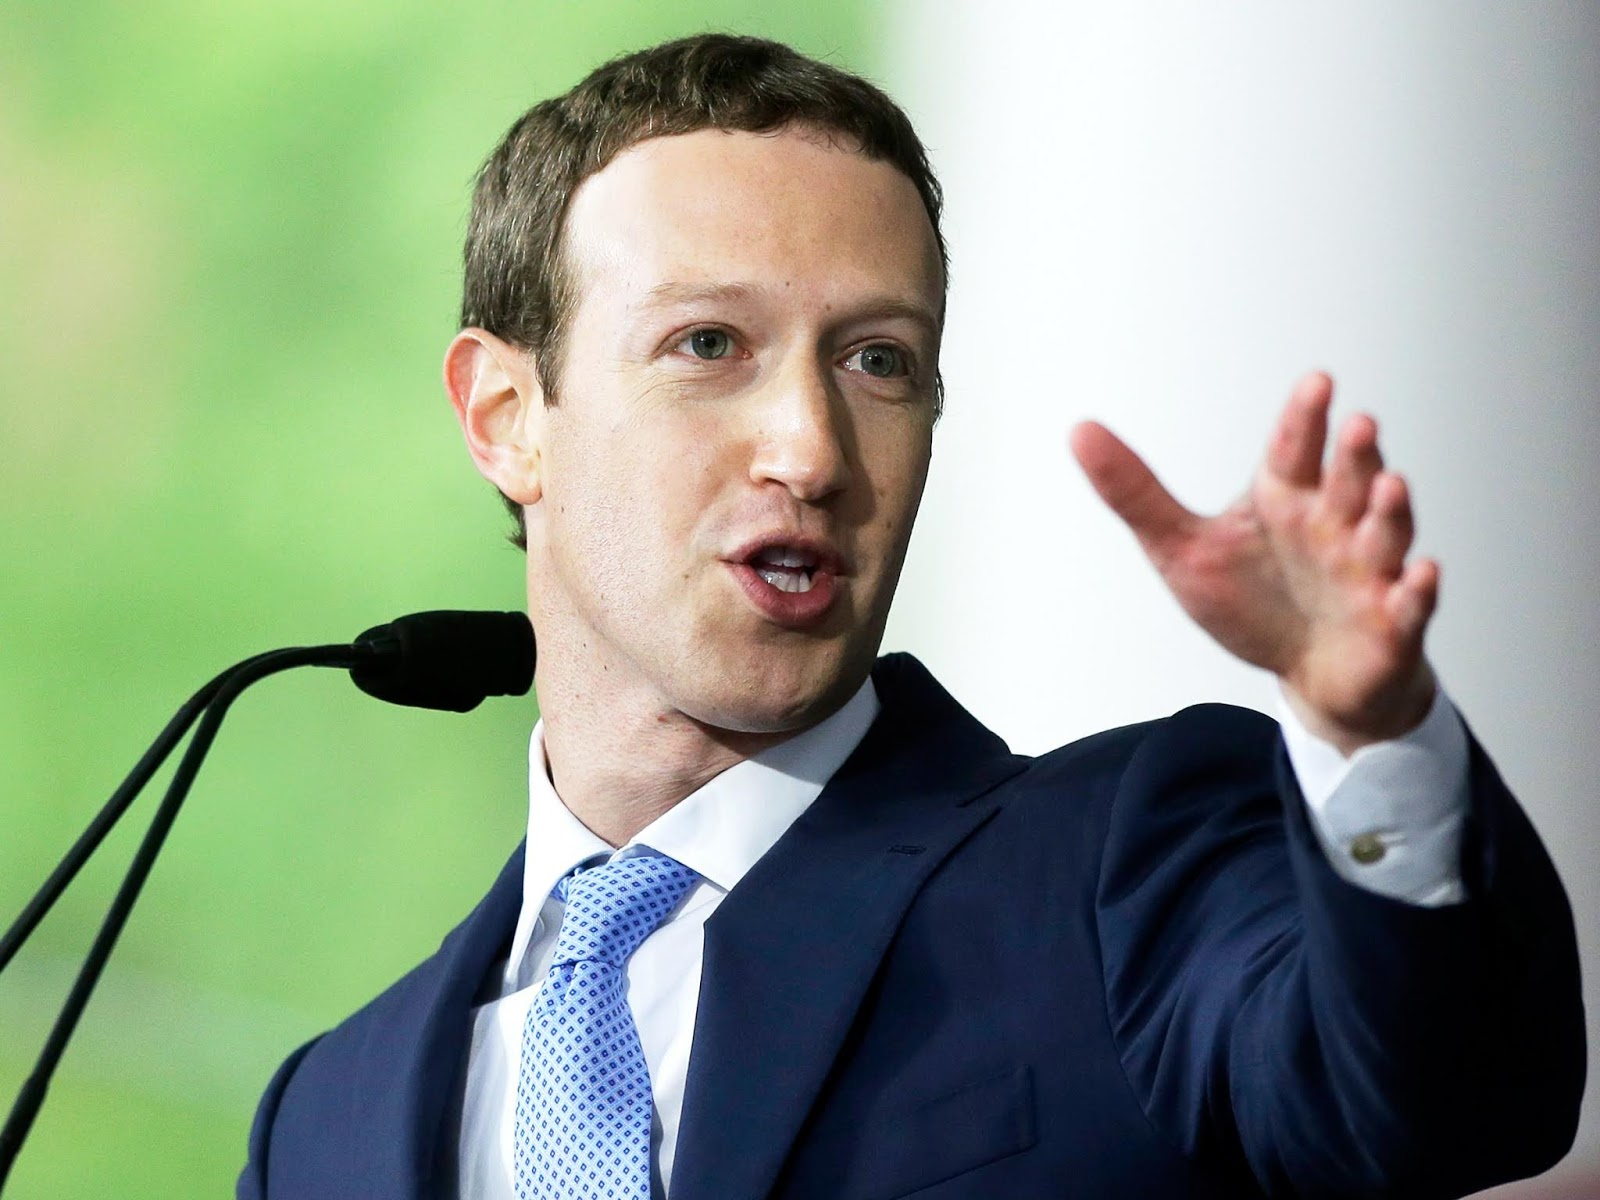 Diretta-Streaming-Mark-Zuckerberg-Parlamento-Europeo